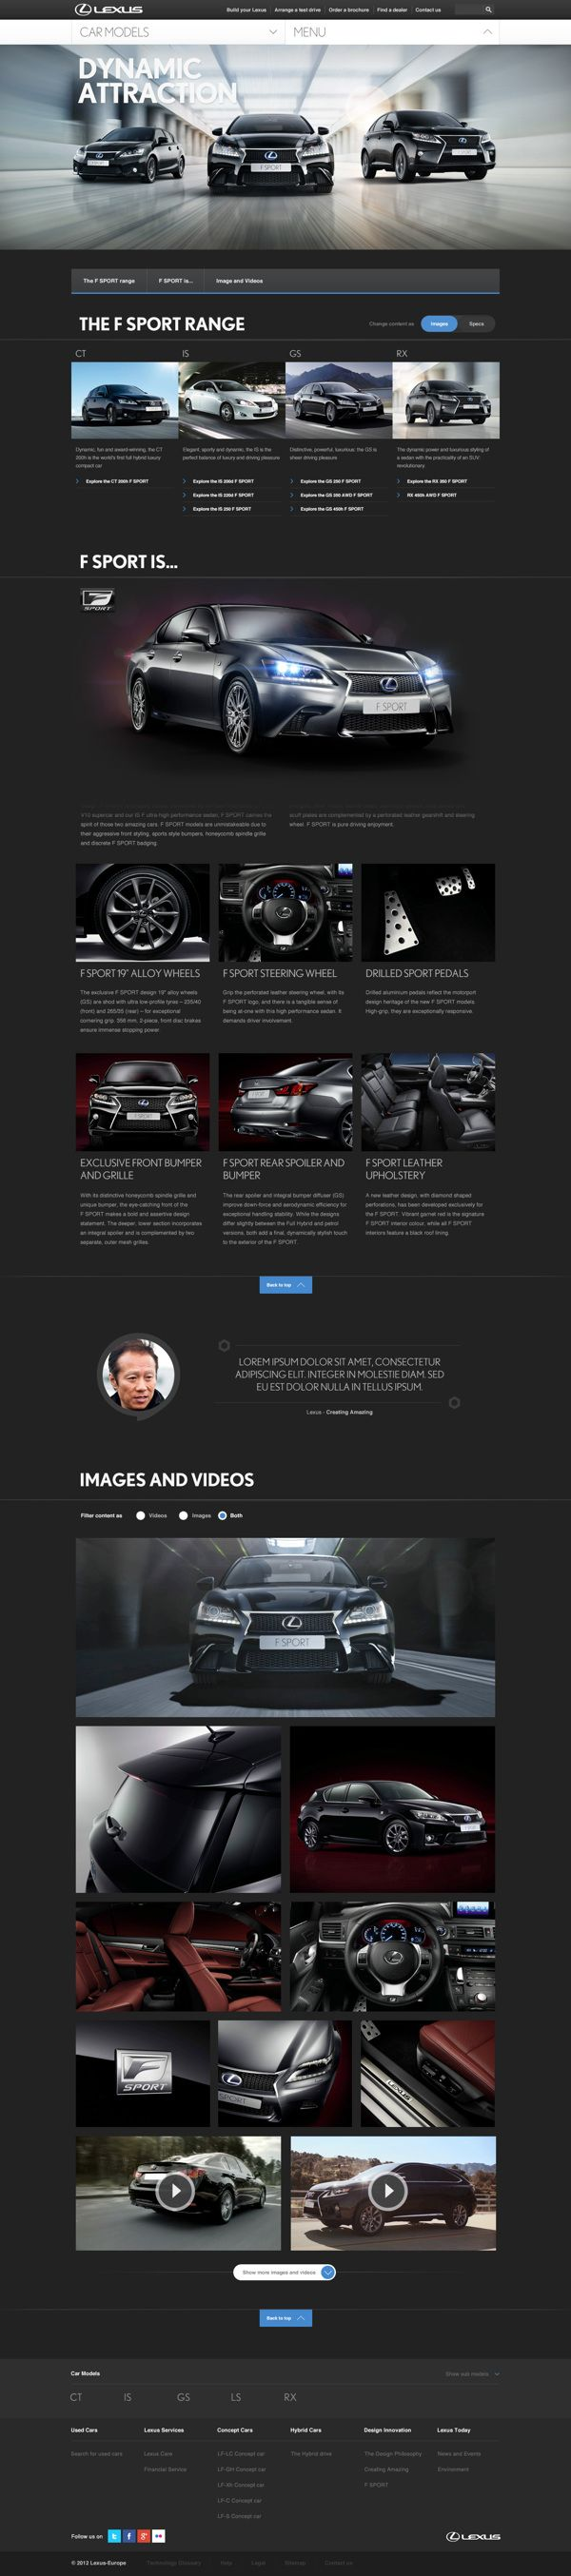 Cool Automotive Web Design on the Internet. Lexus. #automotive #webdesign #webdevelopment #website